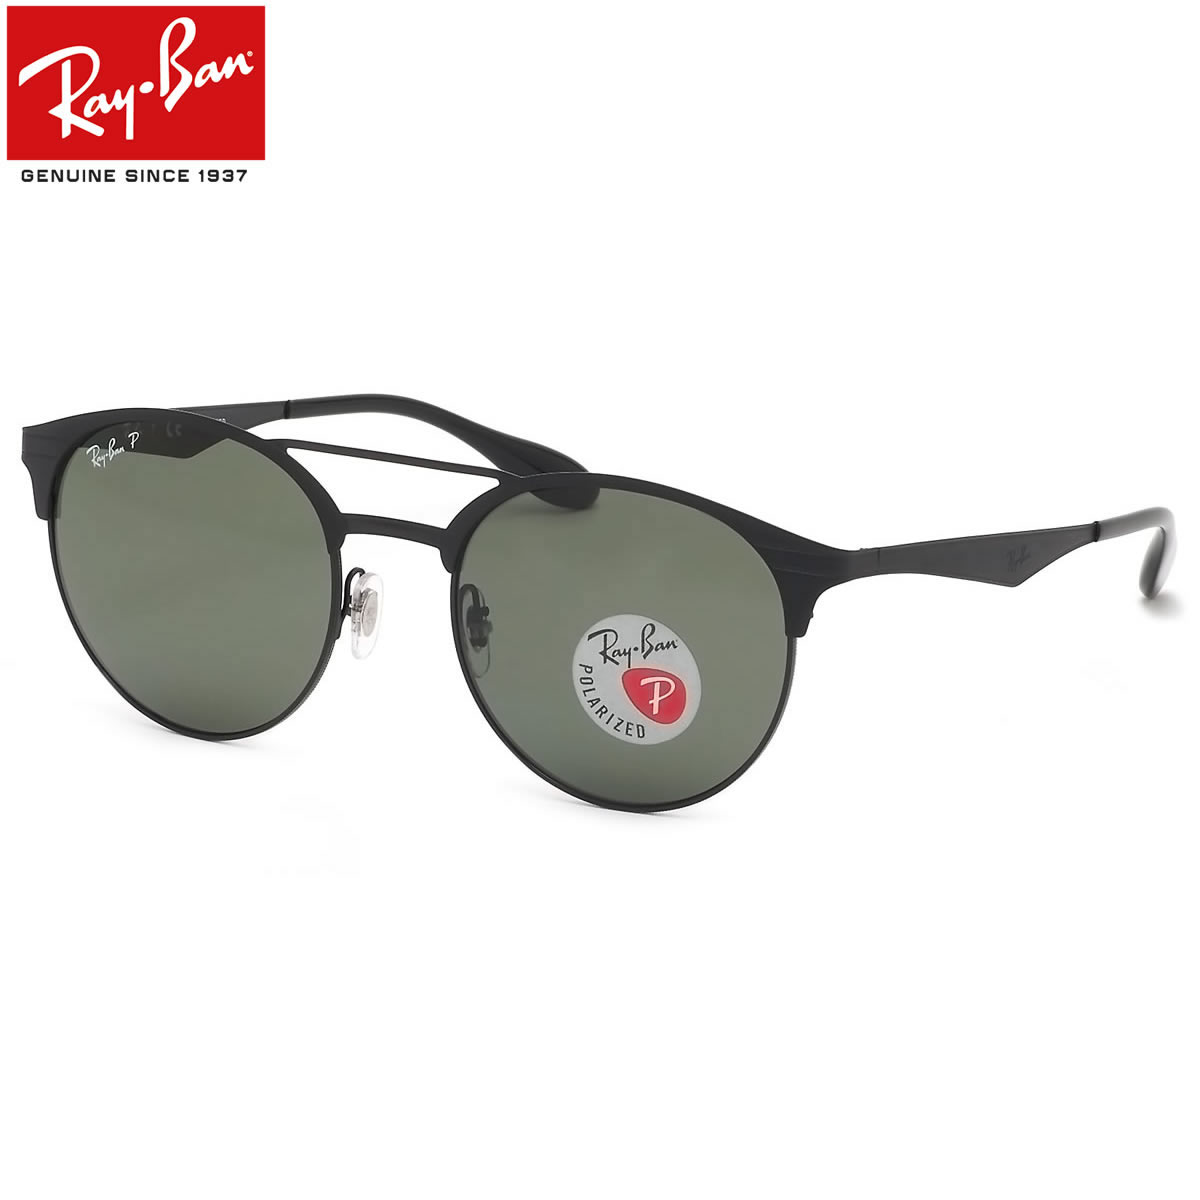 0d9d763ff3 DENNO GANKYO  (Ray-Ban) sunglasses RB 3545 186   9 in A 54 size ...